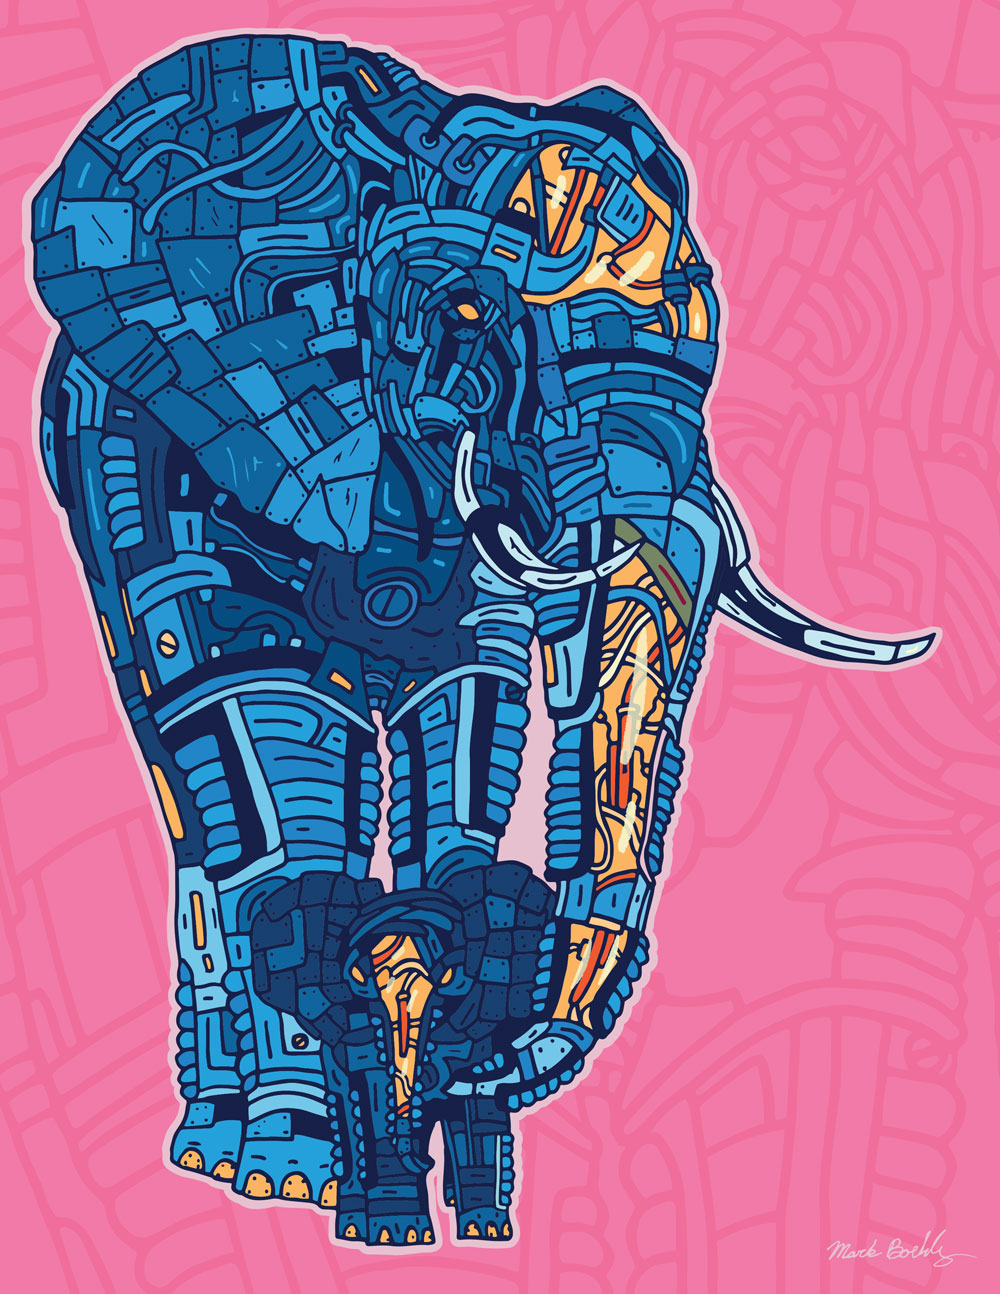 Tranquility Metal Elephant - Creature Collection - Illustrated by Mark Sheldon Boehly - Graphicsbyte Creative